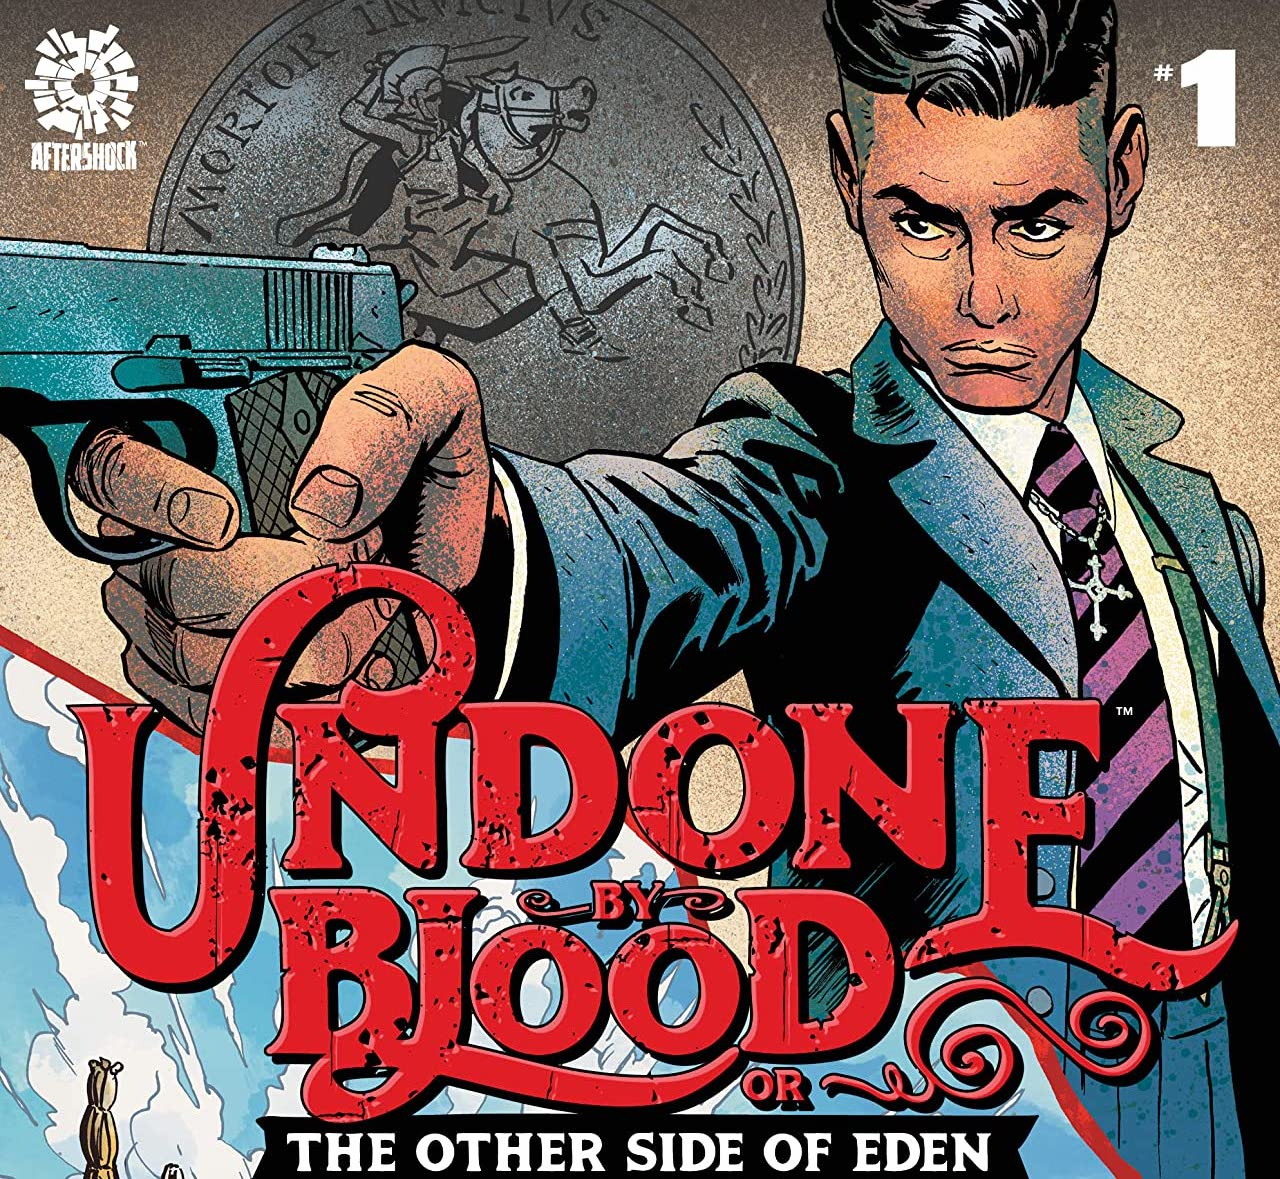 'Undone By Blood: The Other Side of Eden' #1 is a rich and absorbing experience